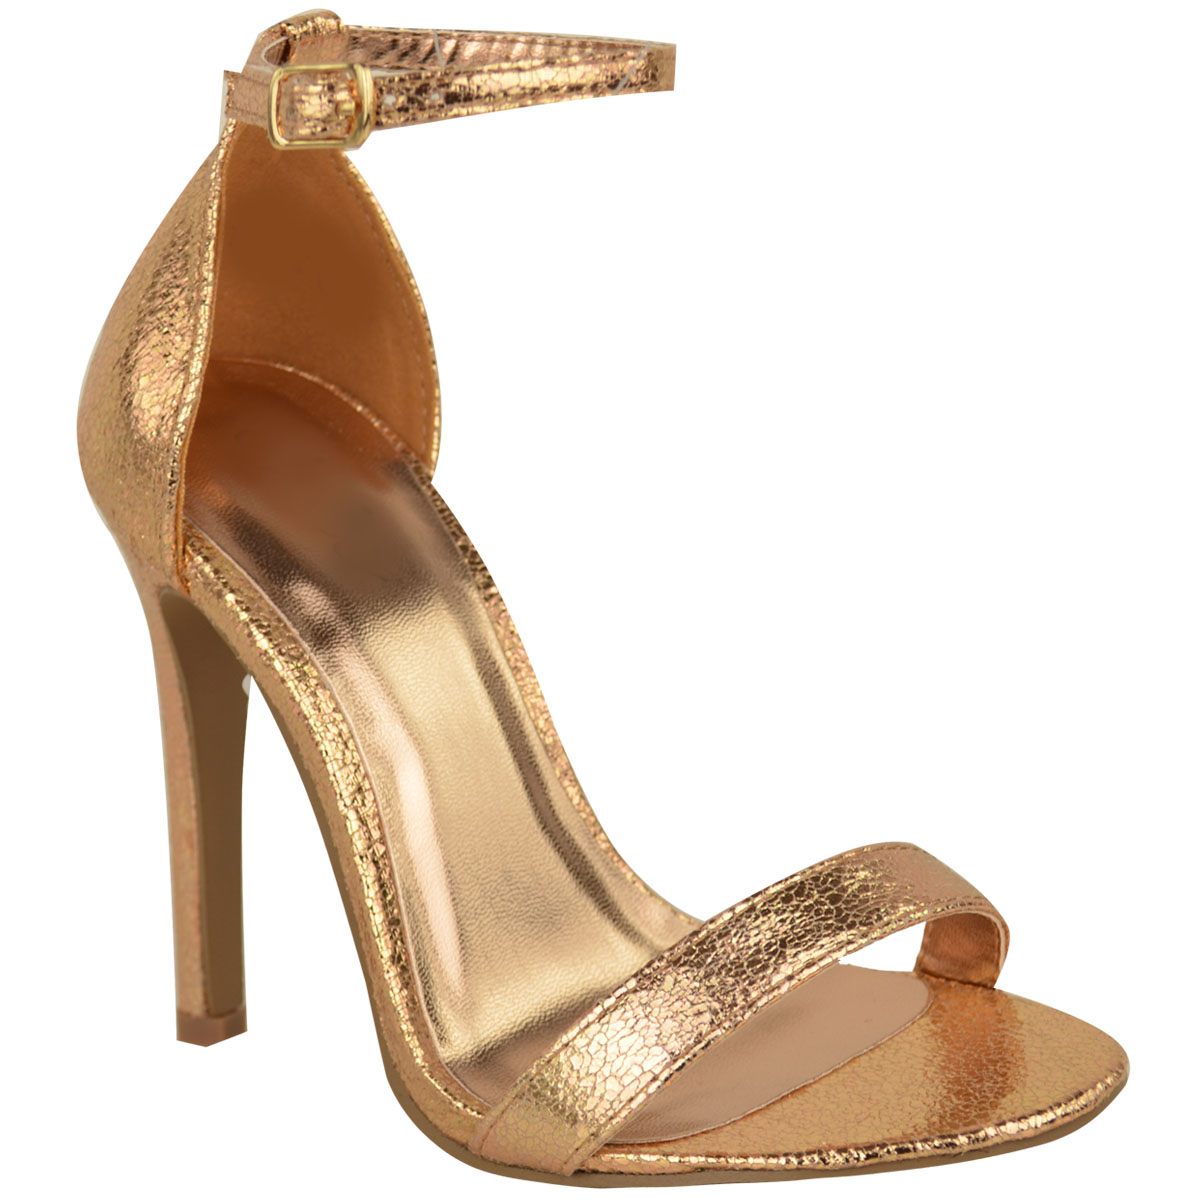 Gold high heel shoes - results from brands Pleaser, Easy Street, Bella Vita, products like INC I.n.c. Women's Sharee High Heel Rhinestone Evening Sandals, Created for Macy's - Tan/Beige 8W, Charlotte Olympia Kitty Flats (Black/Gold Velvet/Metallic Calf) Women's Flat Shoes, Marc Fisher Nala Mid Heel Evening Sandals - Gold M, Women's Shoes.